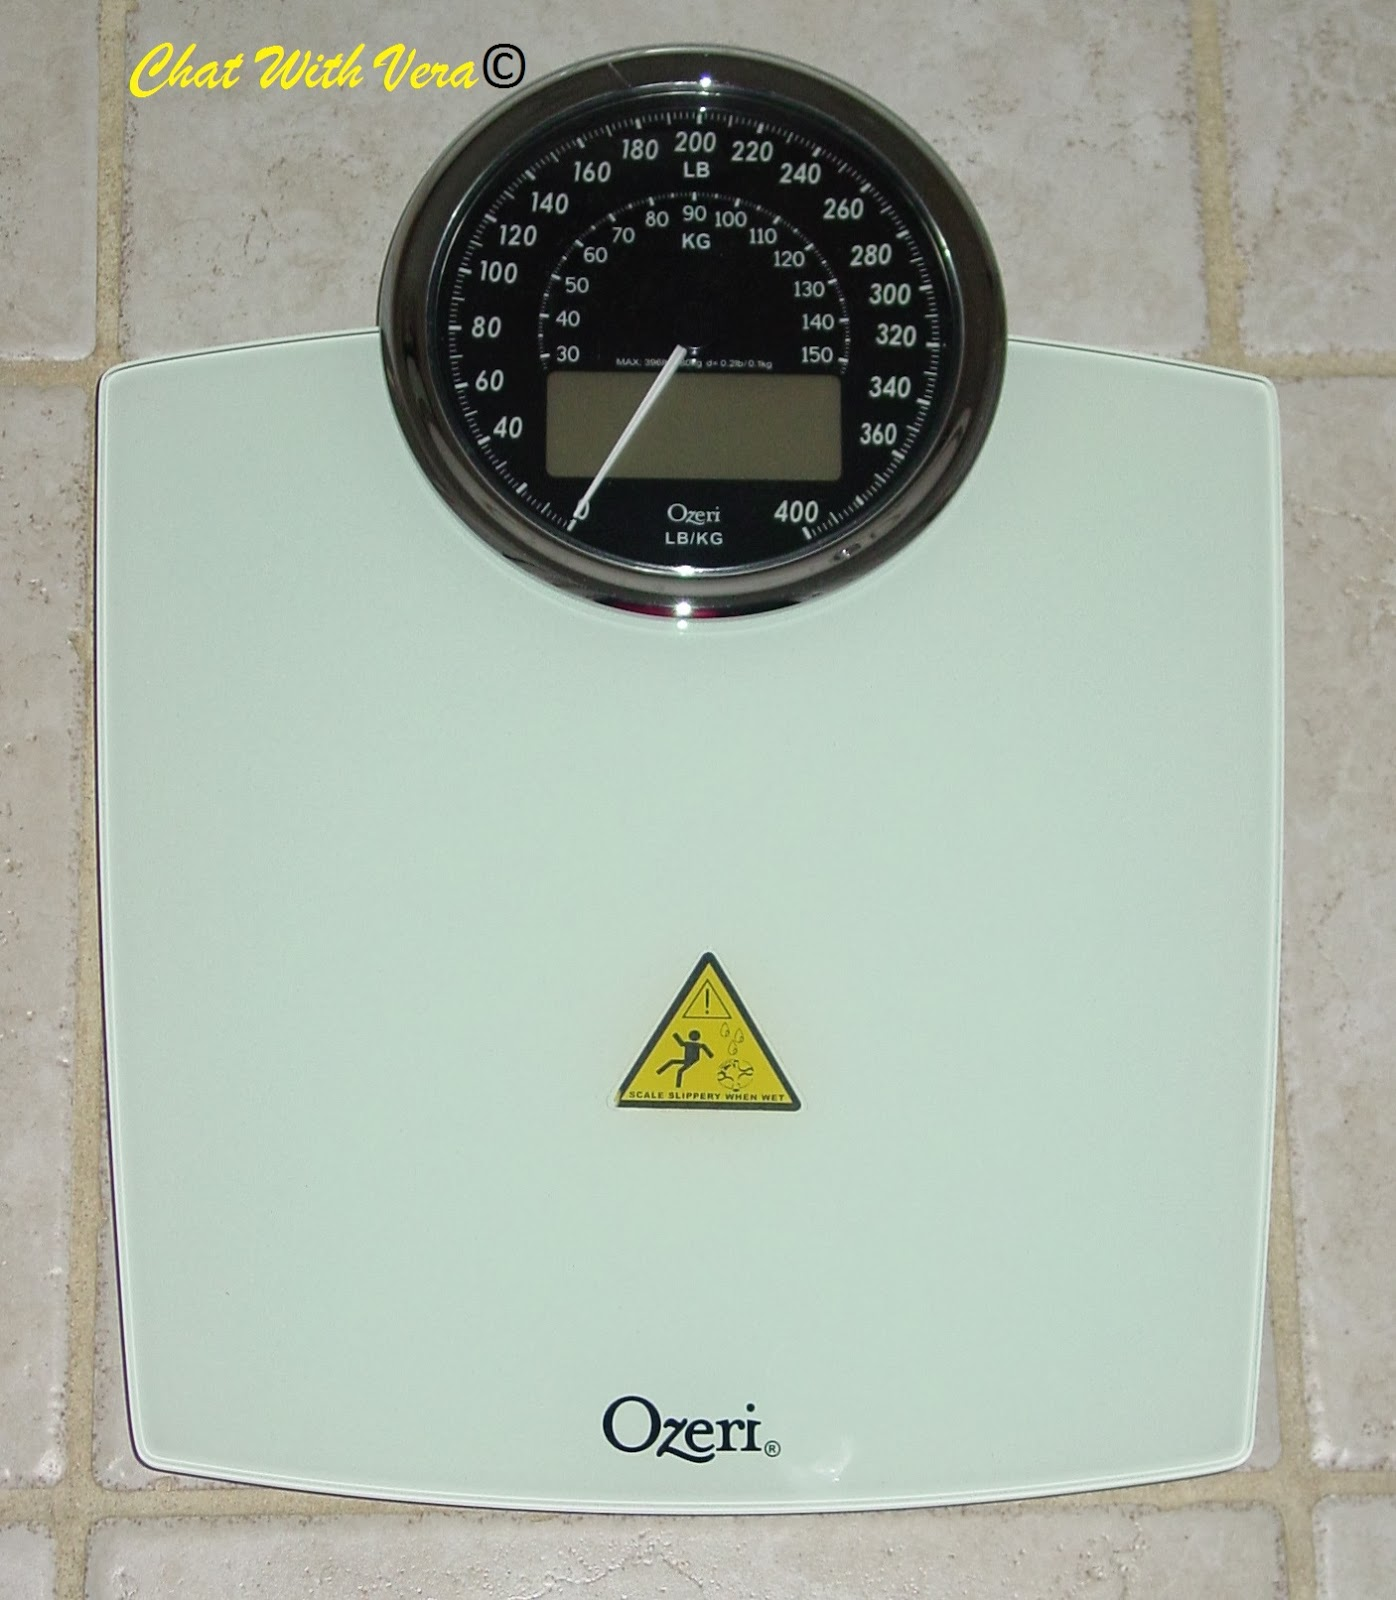 chat with vera ozeri rev digital bathroom scale with